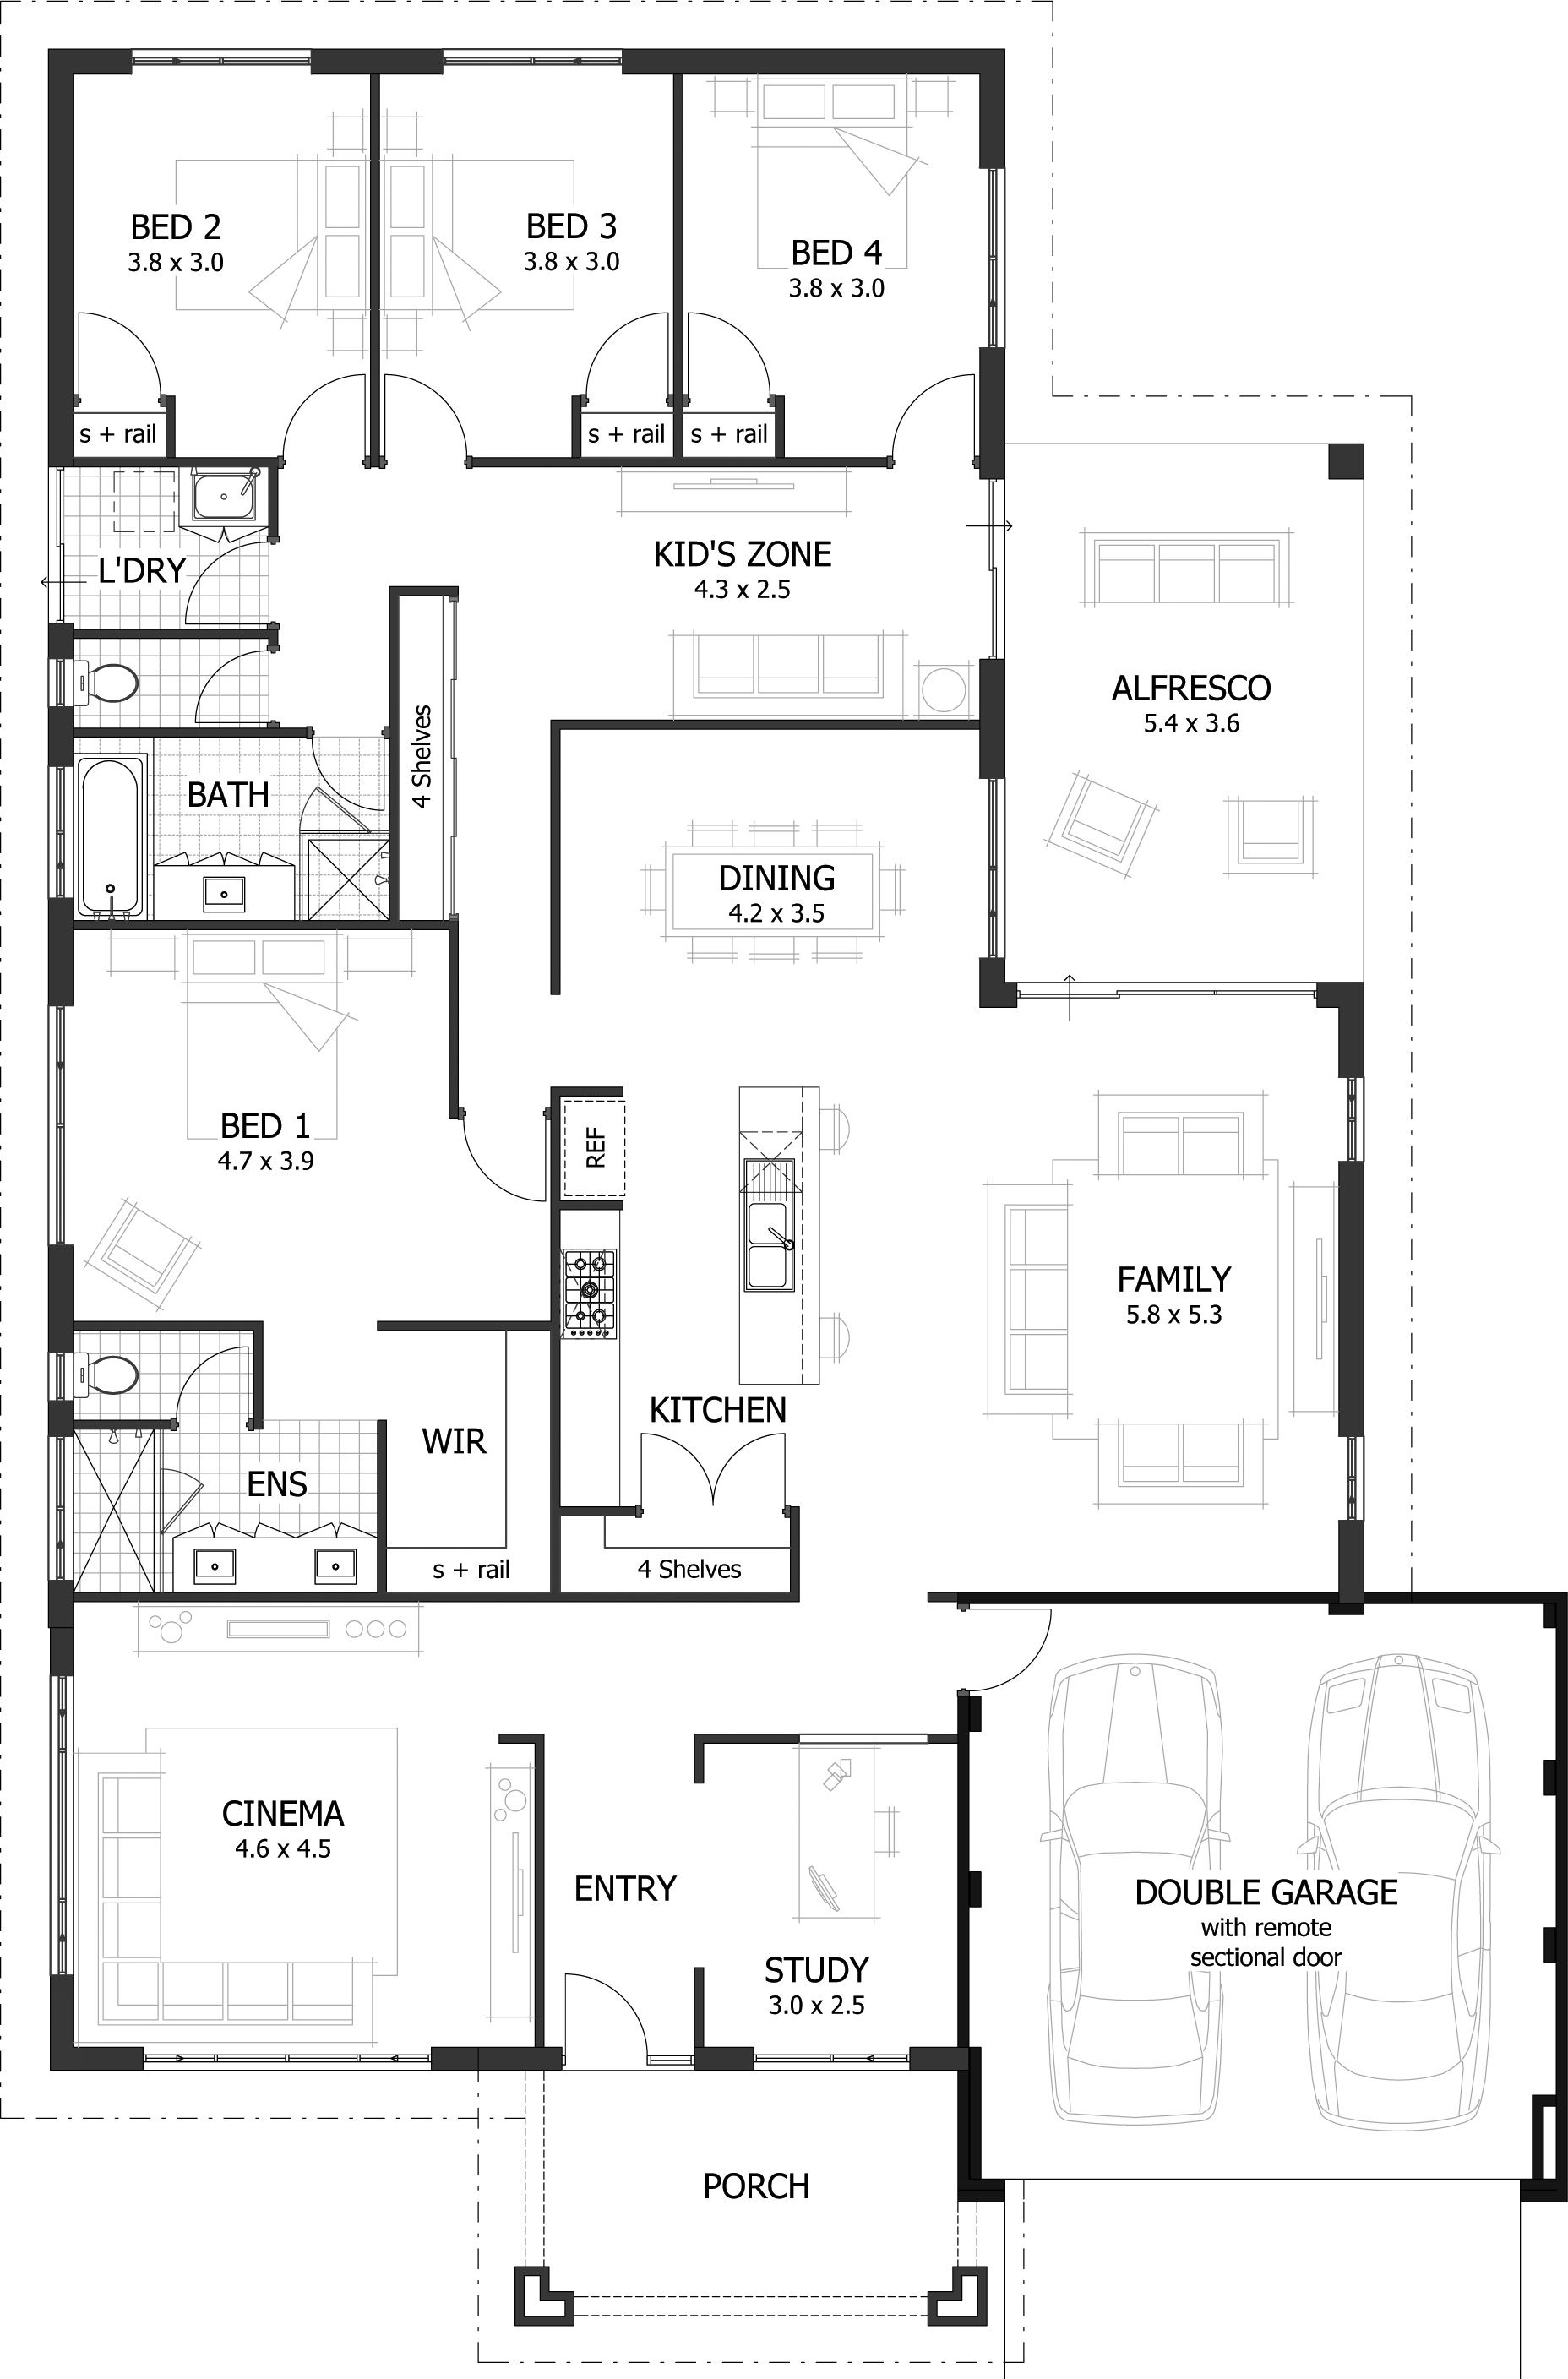 4 bedroom house plans home designs celebration homes floorplans pinterest 4 bedroom for 4 bedroom cabin plans